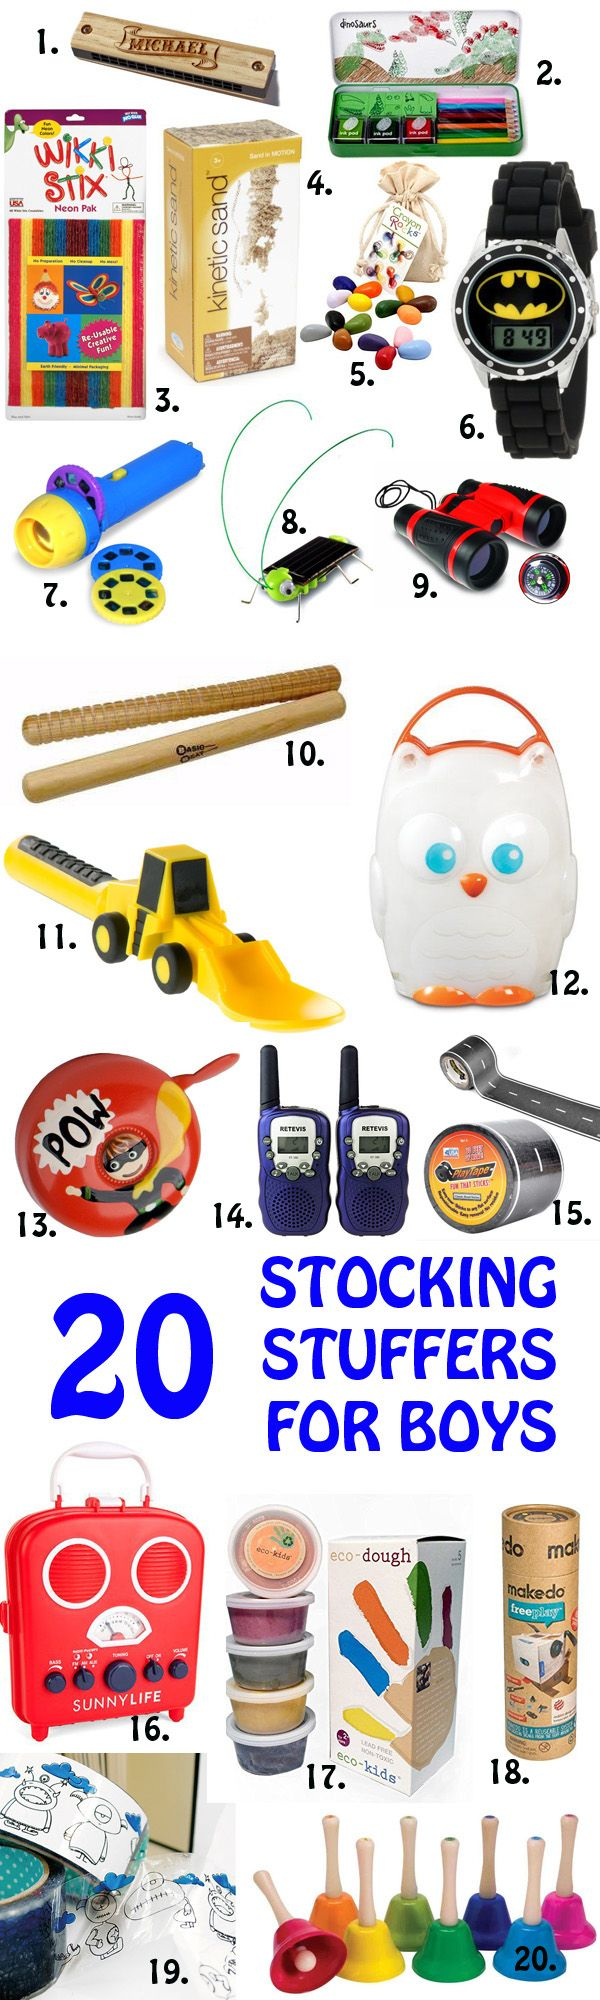 20 Non-Candy Stocking Stuffers for Boys - at Non Toy Gifts